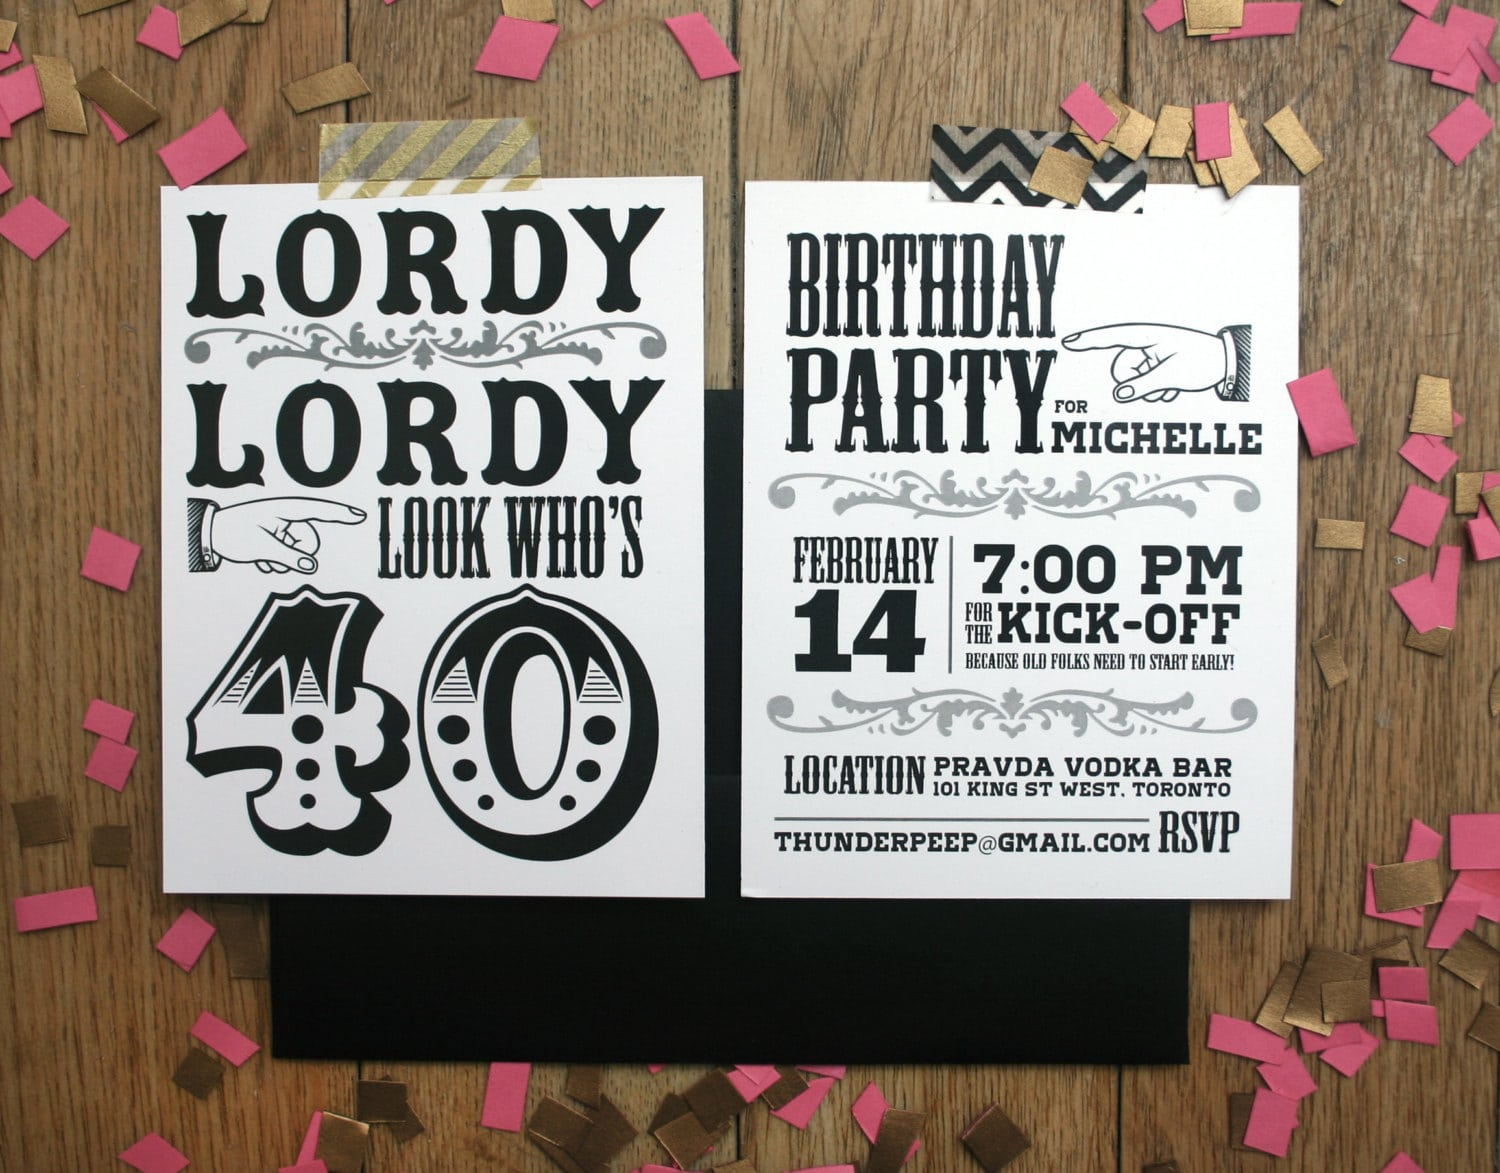 40th birthday party invitations for men mickey mouse invitations 40th birthday party invitations for him 40th birthday party invites free templates uk stopboris Image collections